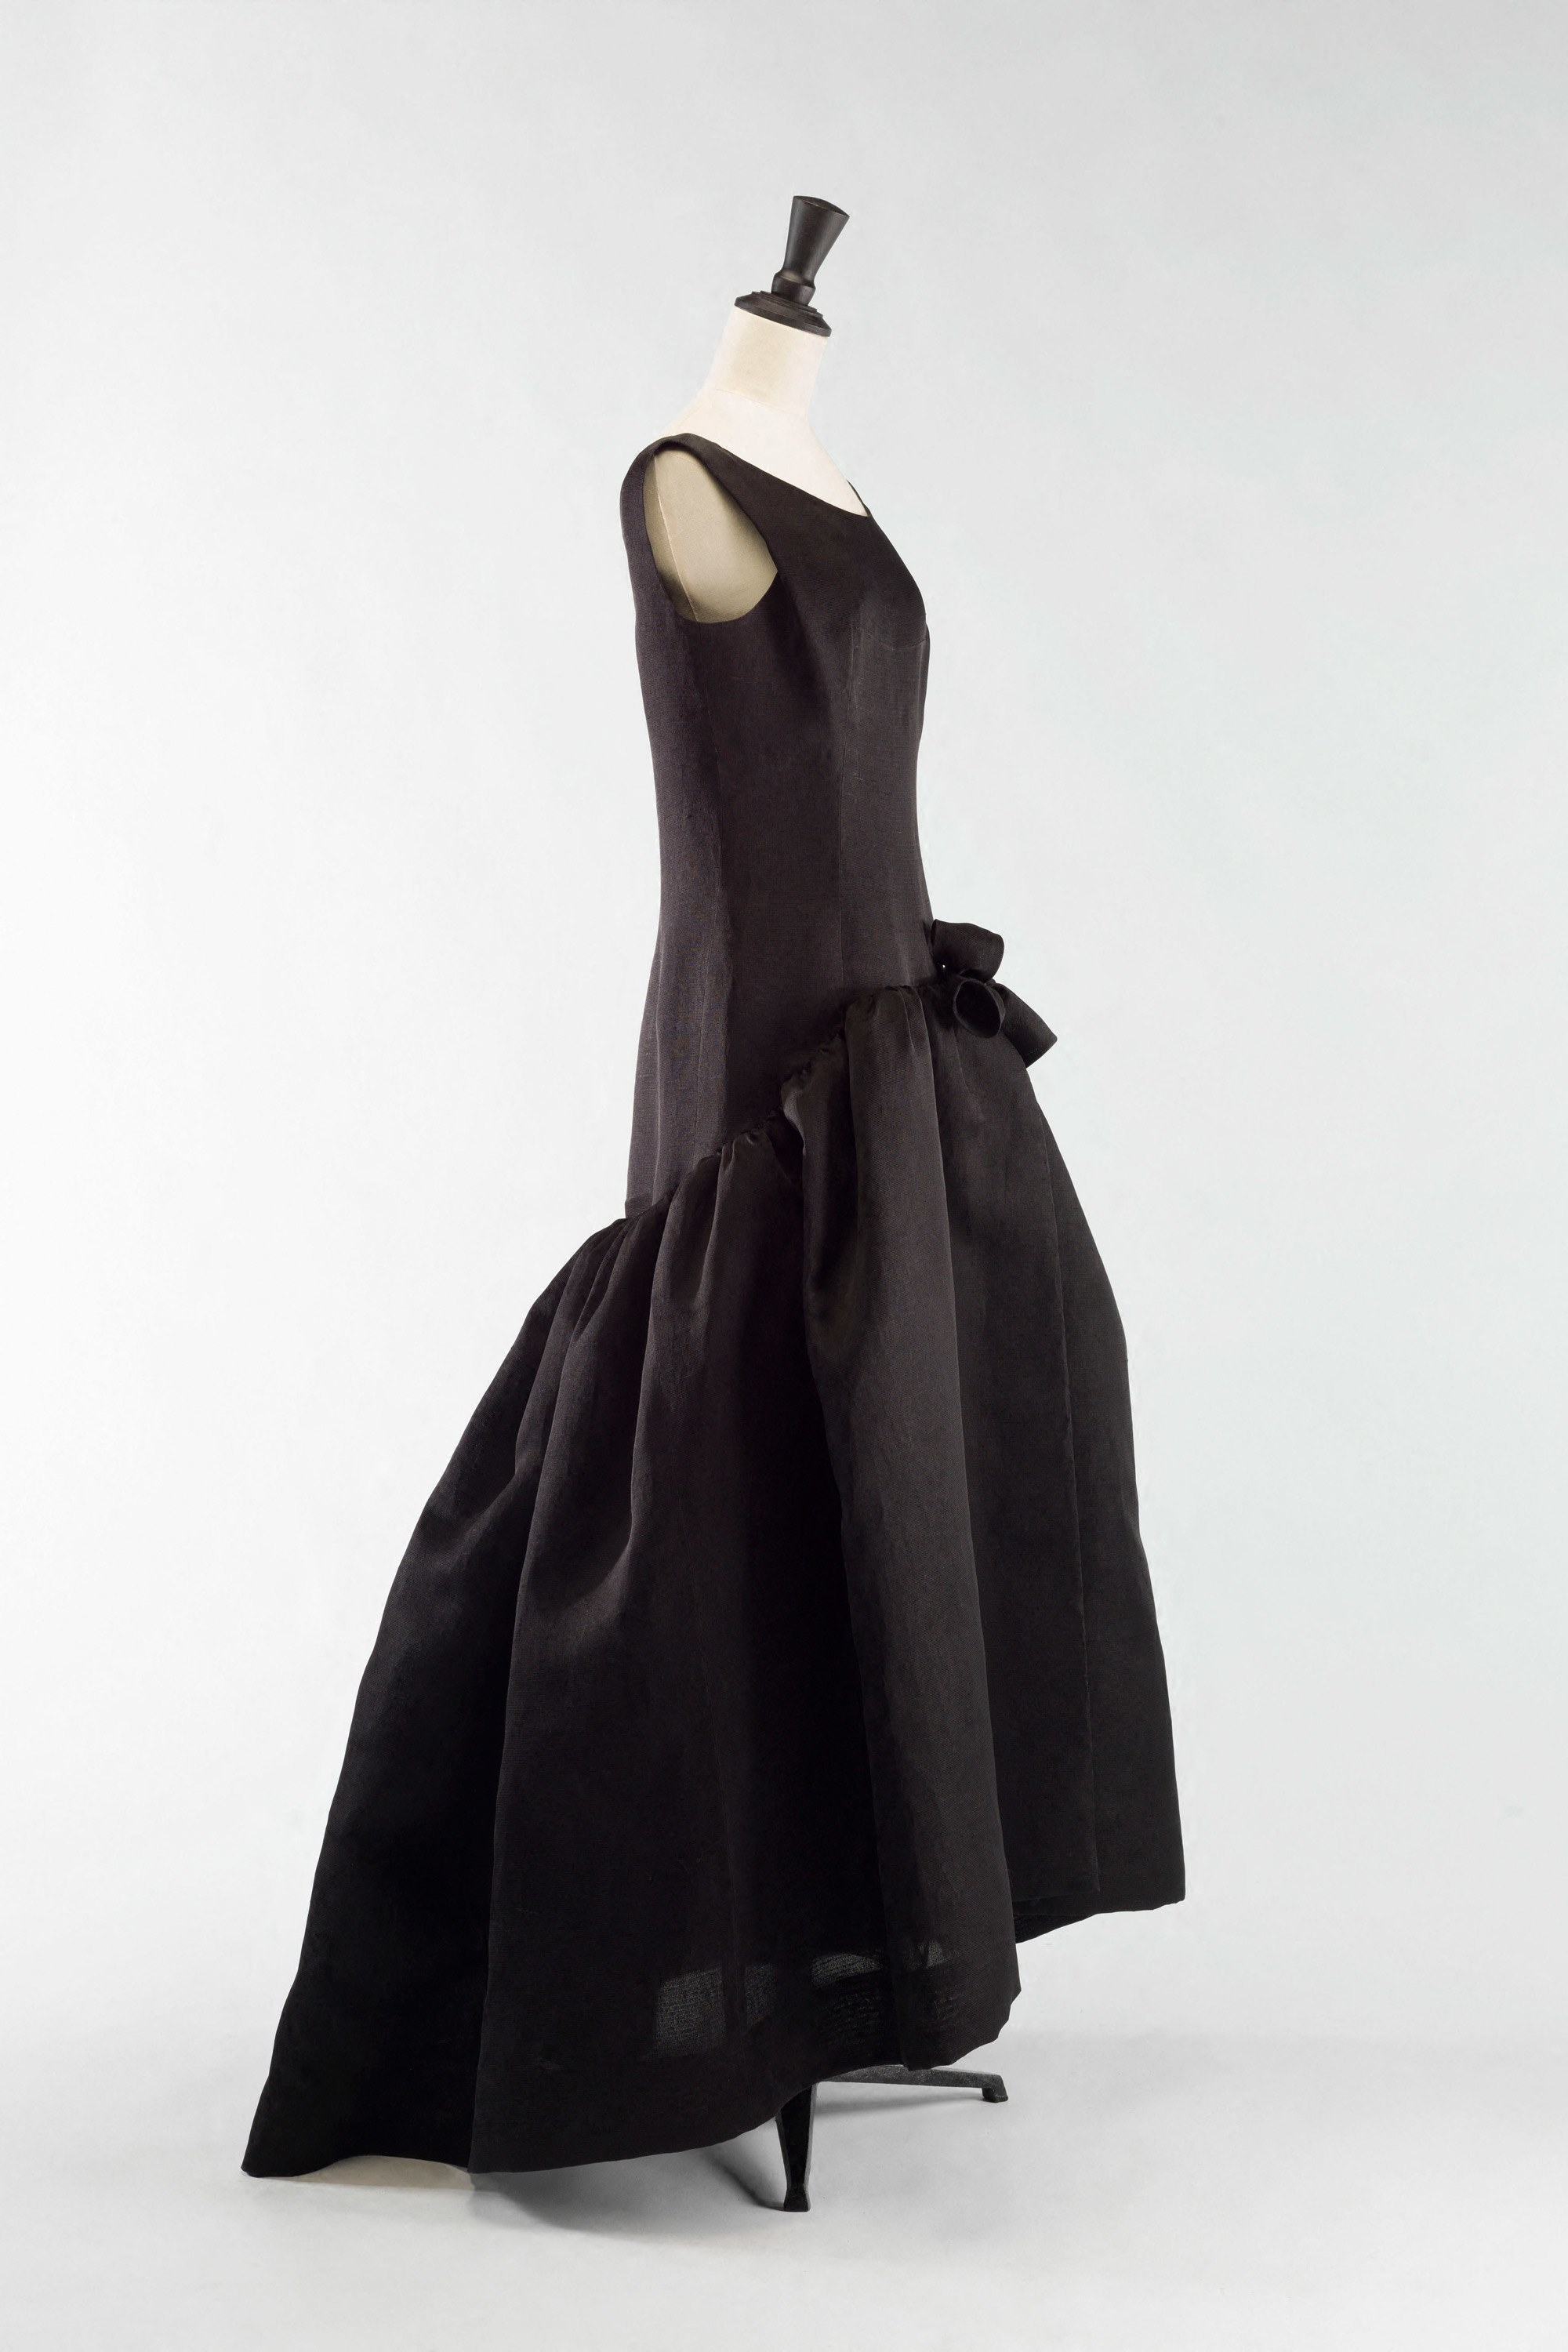 Balenciaga gazar dress, 1963